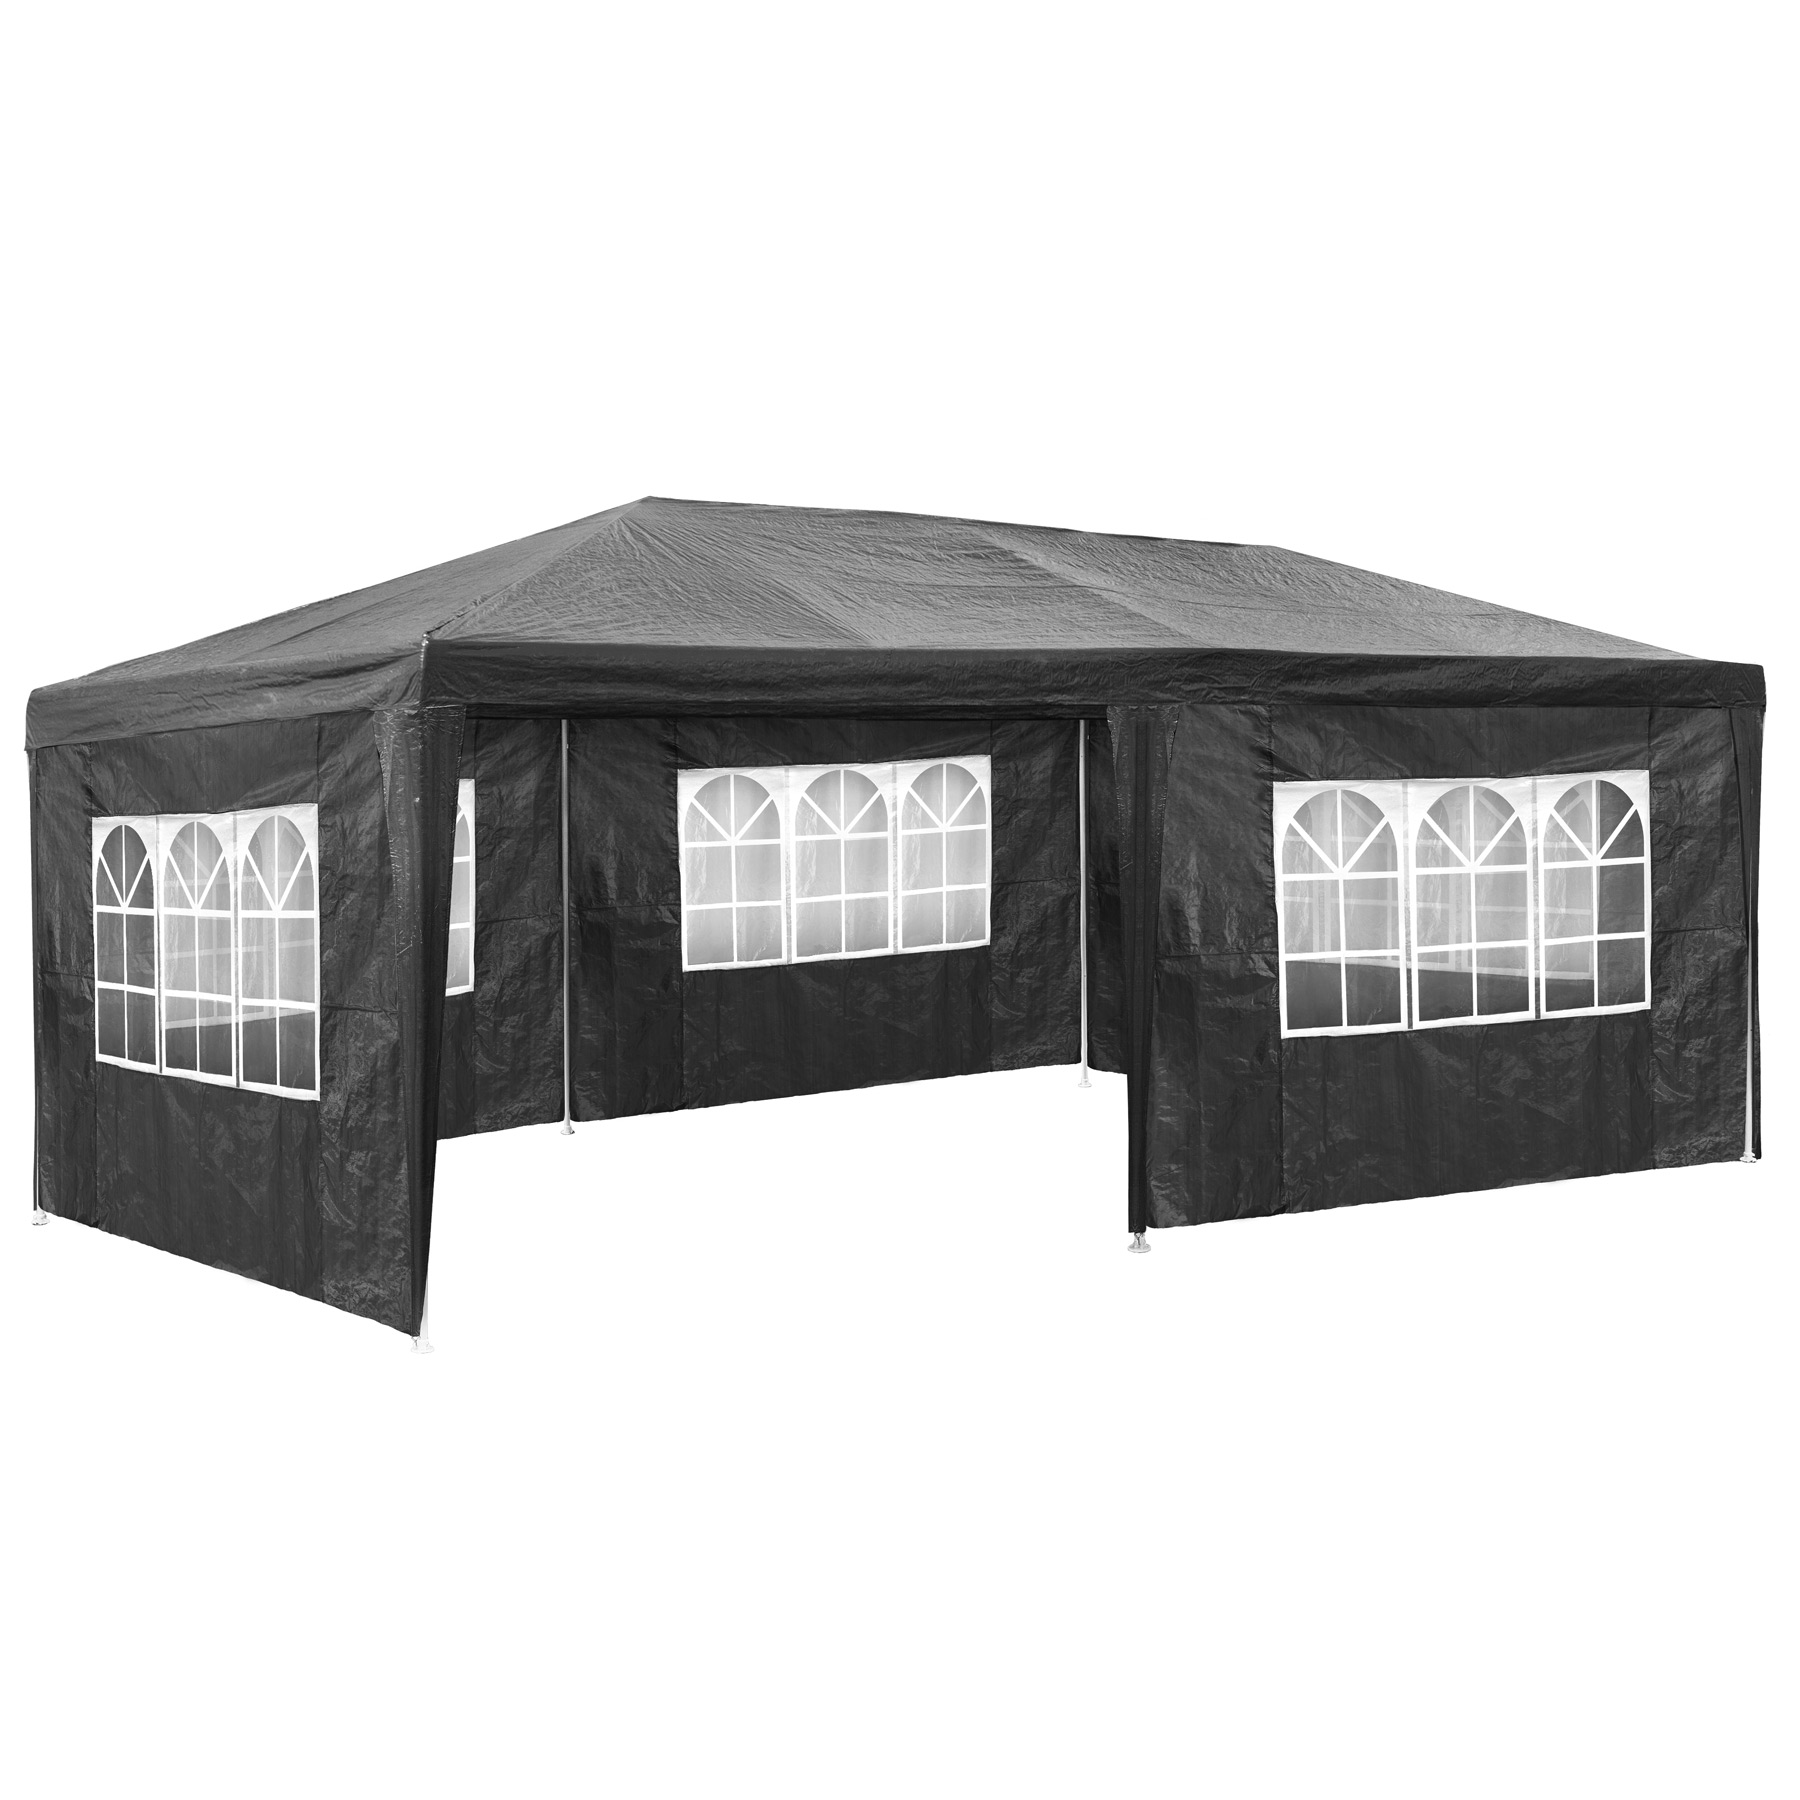 pavillon 3x6m grau partyzelt gartenzelt festzelt zelt. Black Bedroom Furniture Sets. Home Design Ideas